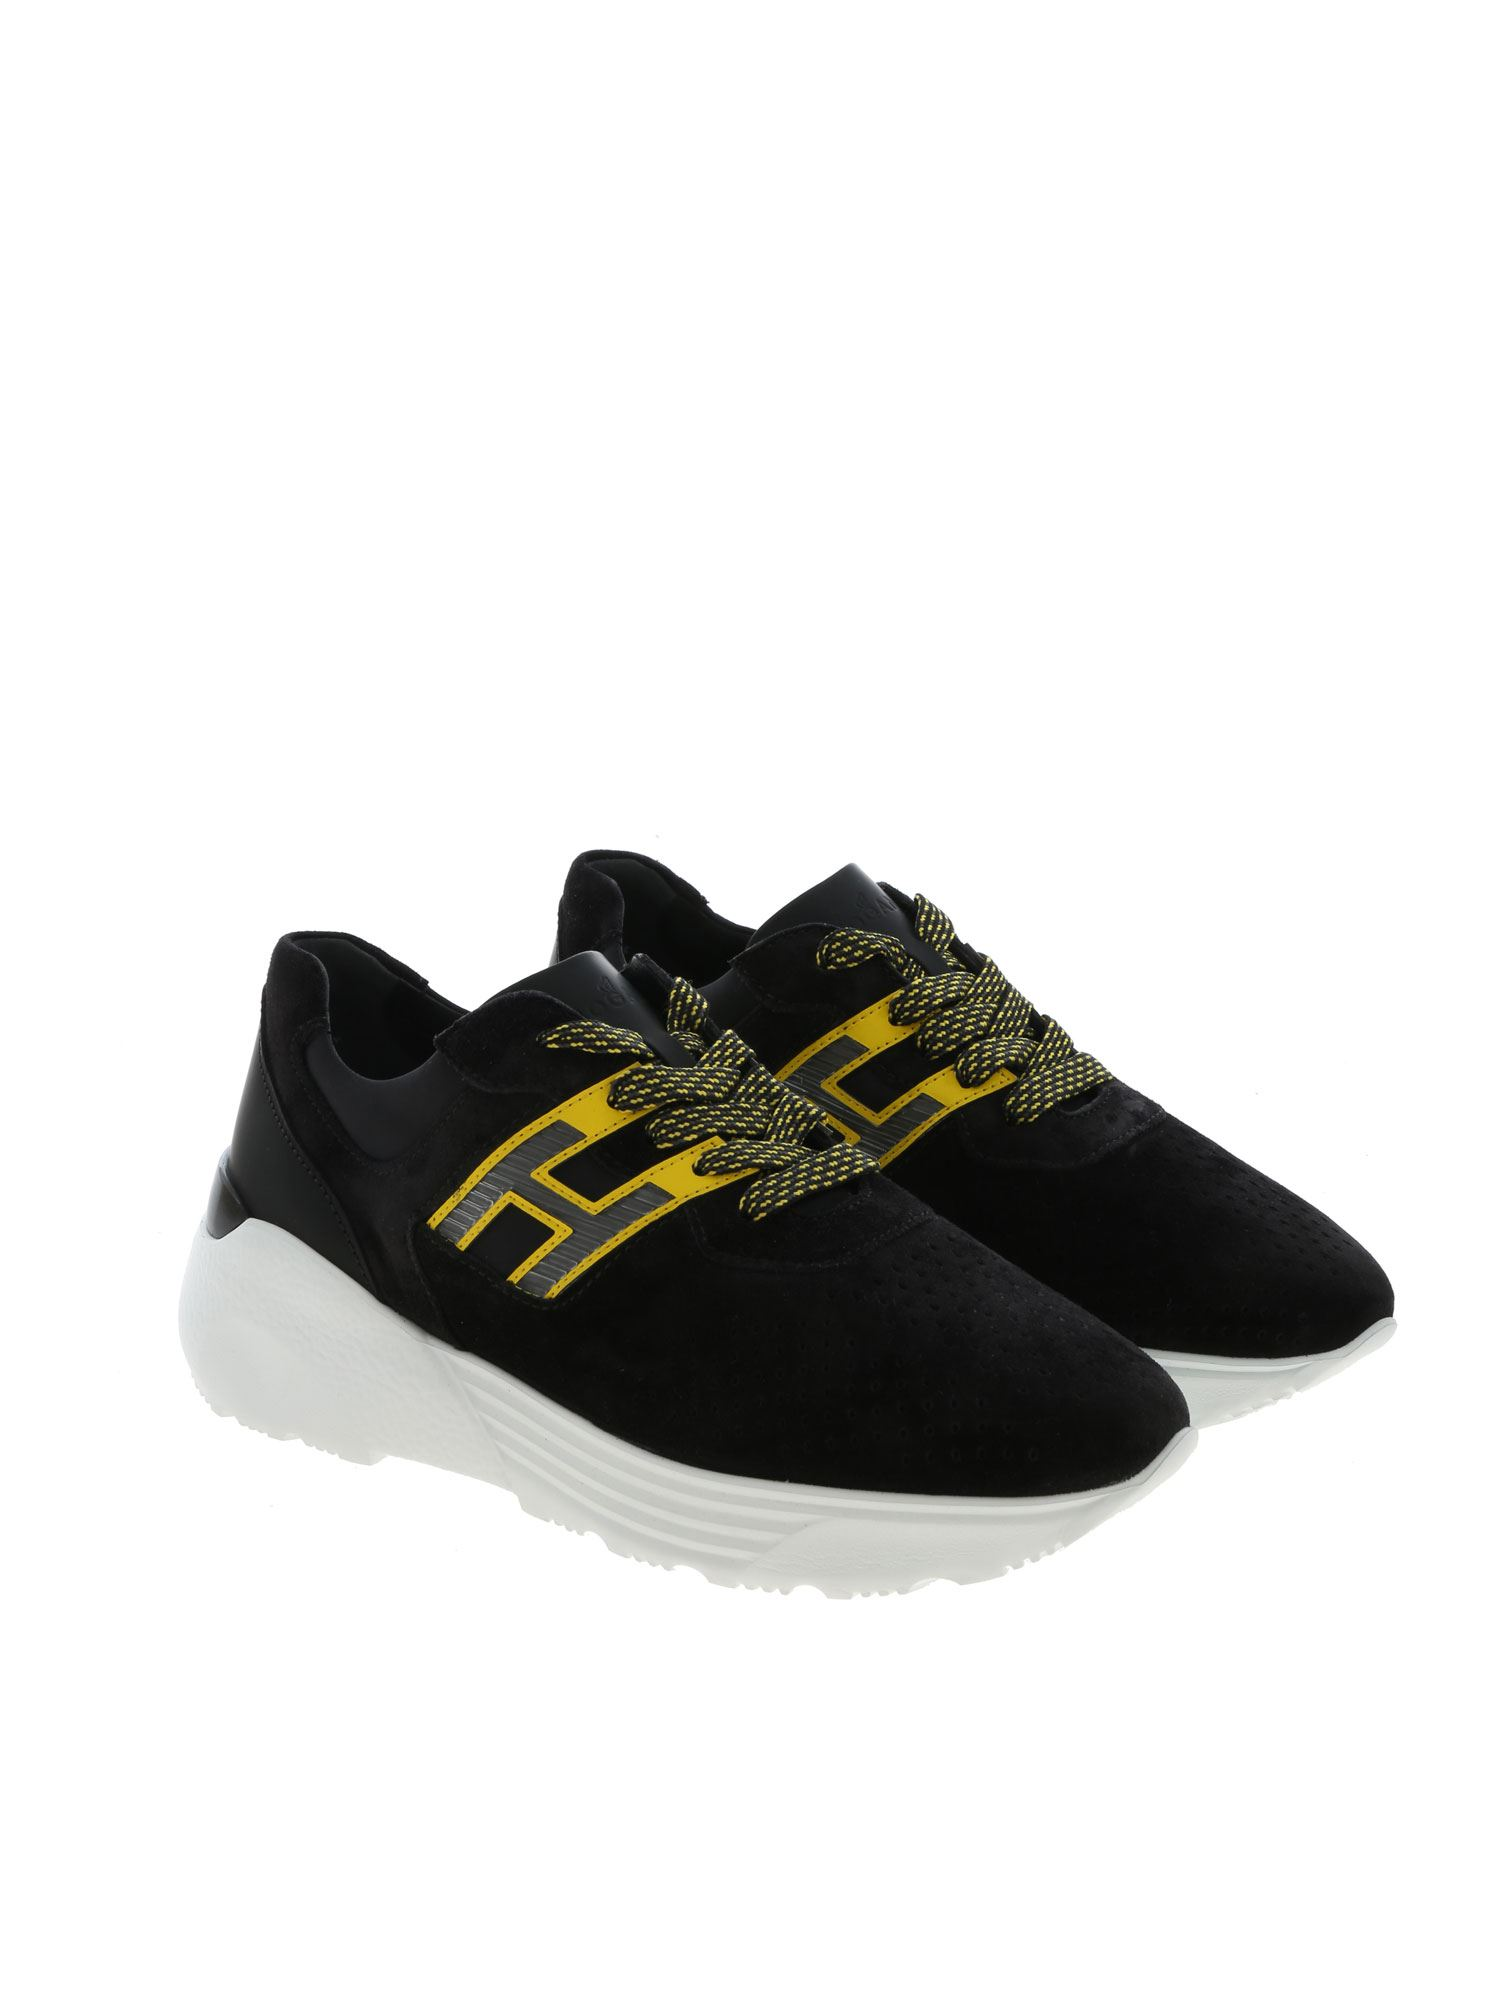 Hogan Sneakers In Perforated Rubber And Neoprene Suede With Neon ...